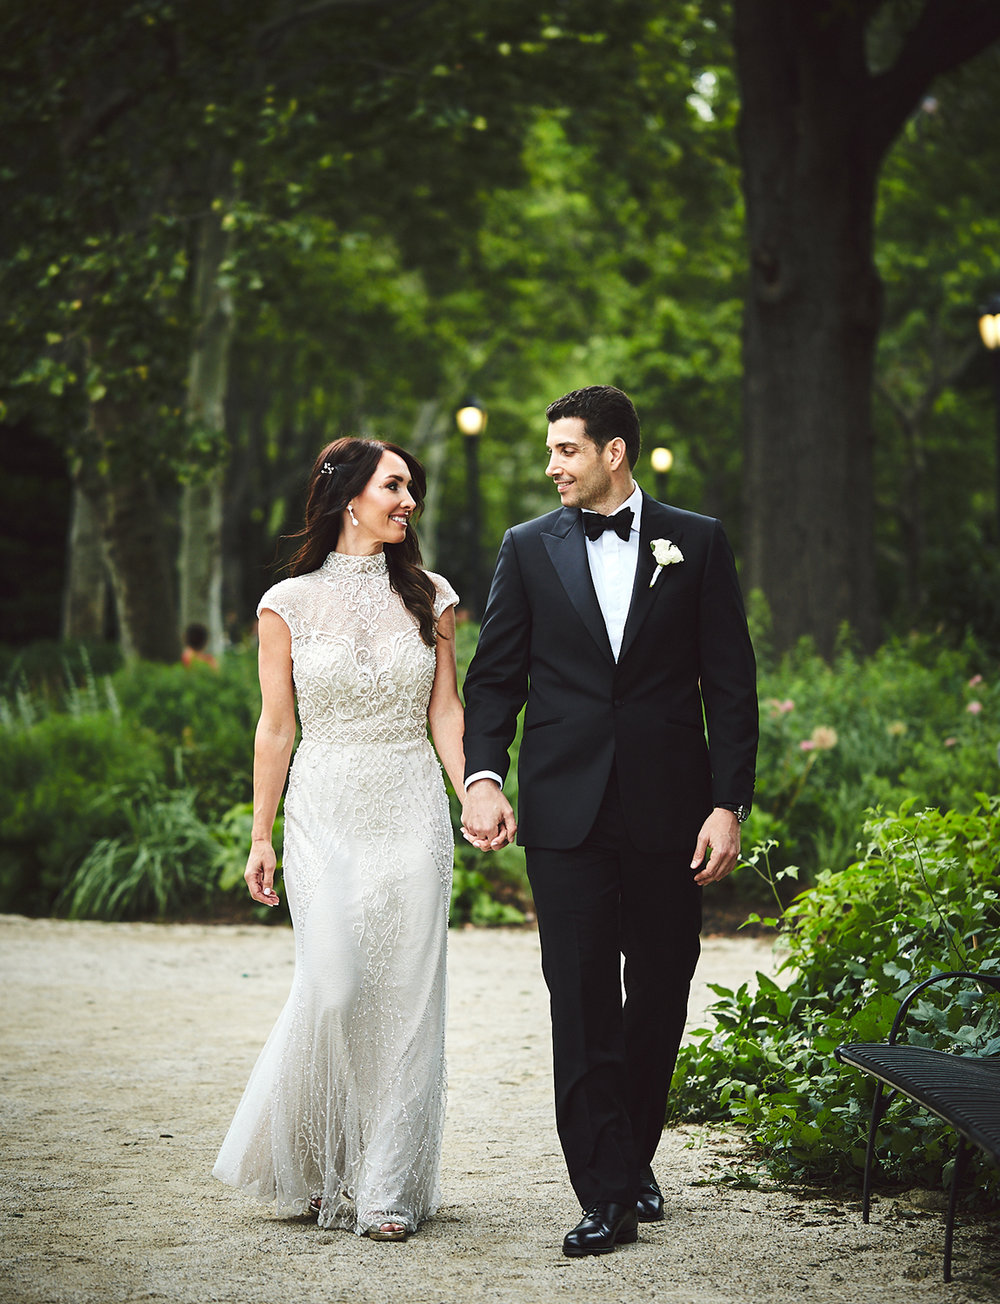 180622_BatteryGardensWeddingPhotography_NYCWeddingPhotographer_BriJohnsonWeddings_0067.jpg